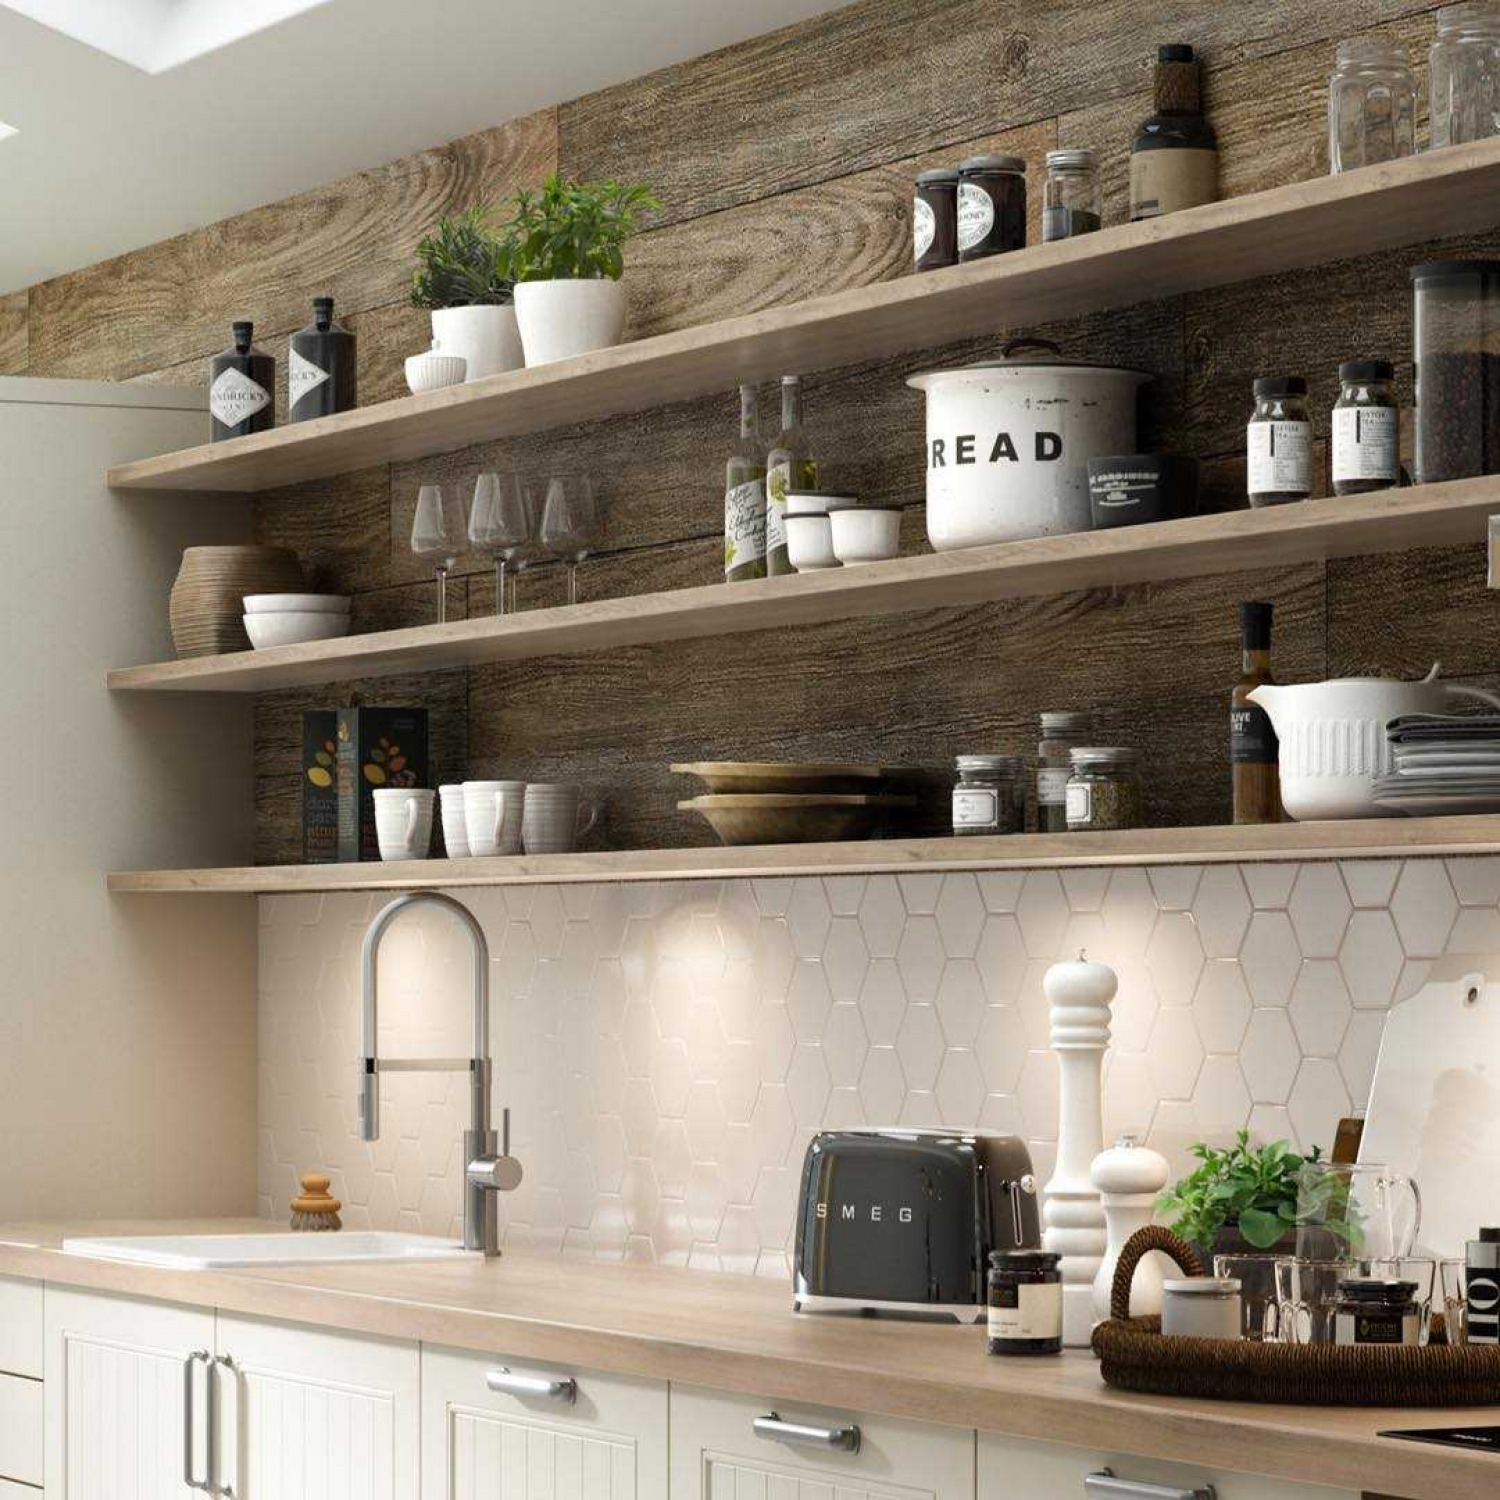 Kitchen Shelving Open Shelving Ideas & Kitchen shelving: Discover storage ideas for your home | Omega PLC